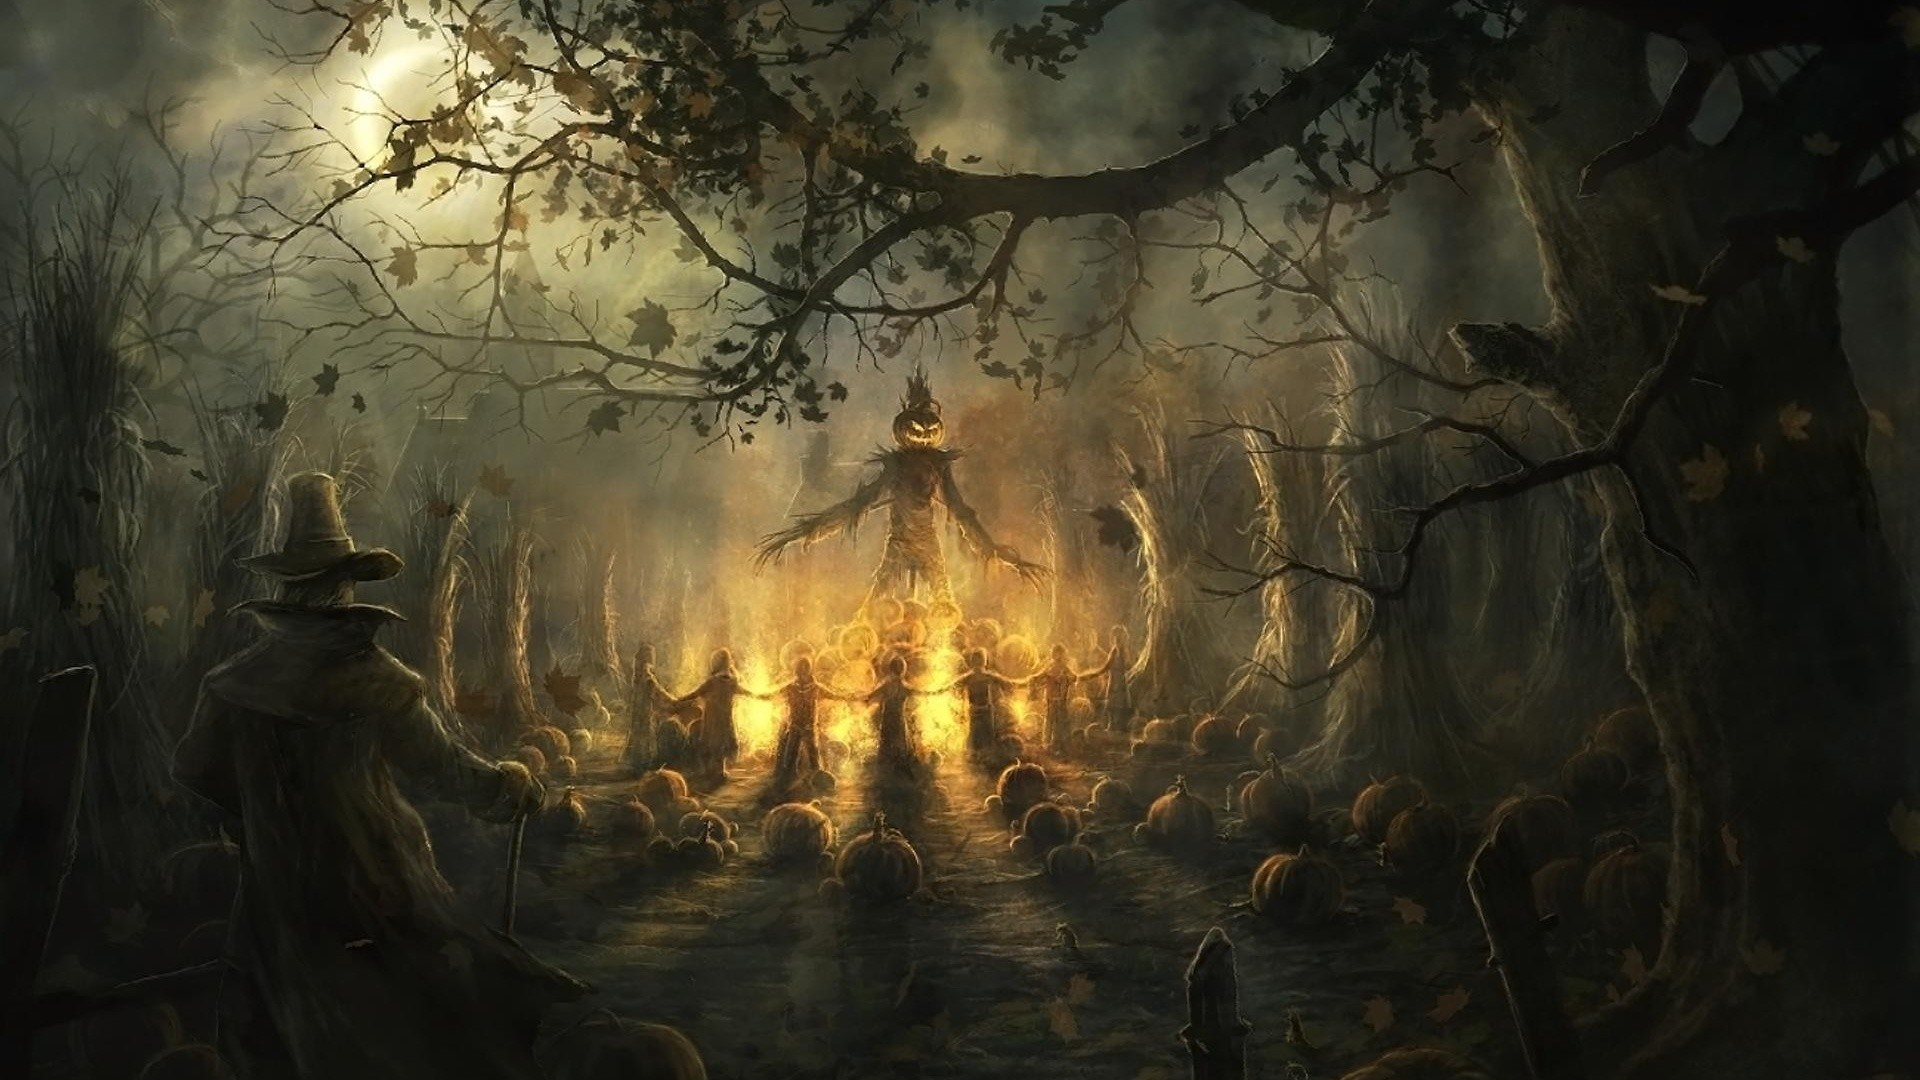 18 HD Scary Halloween Desktop Wallpapers For Free Download